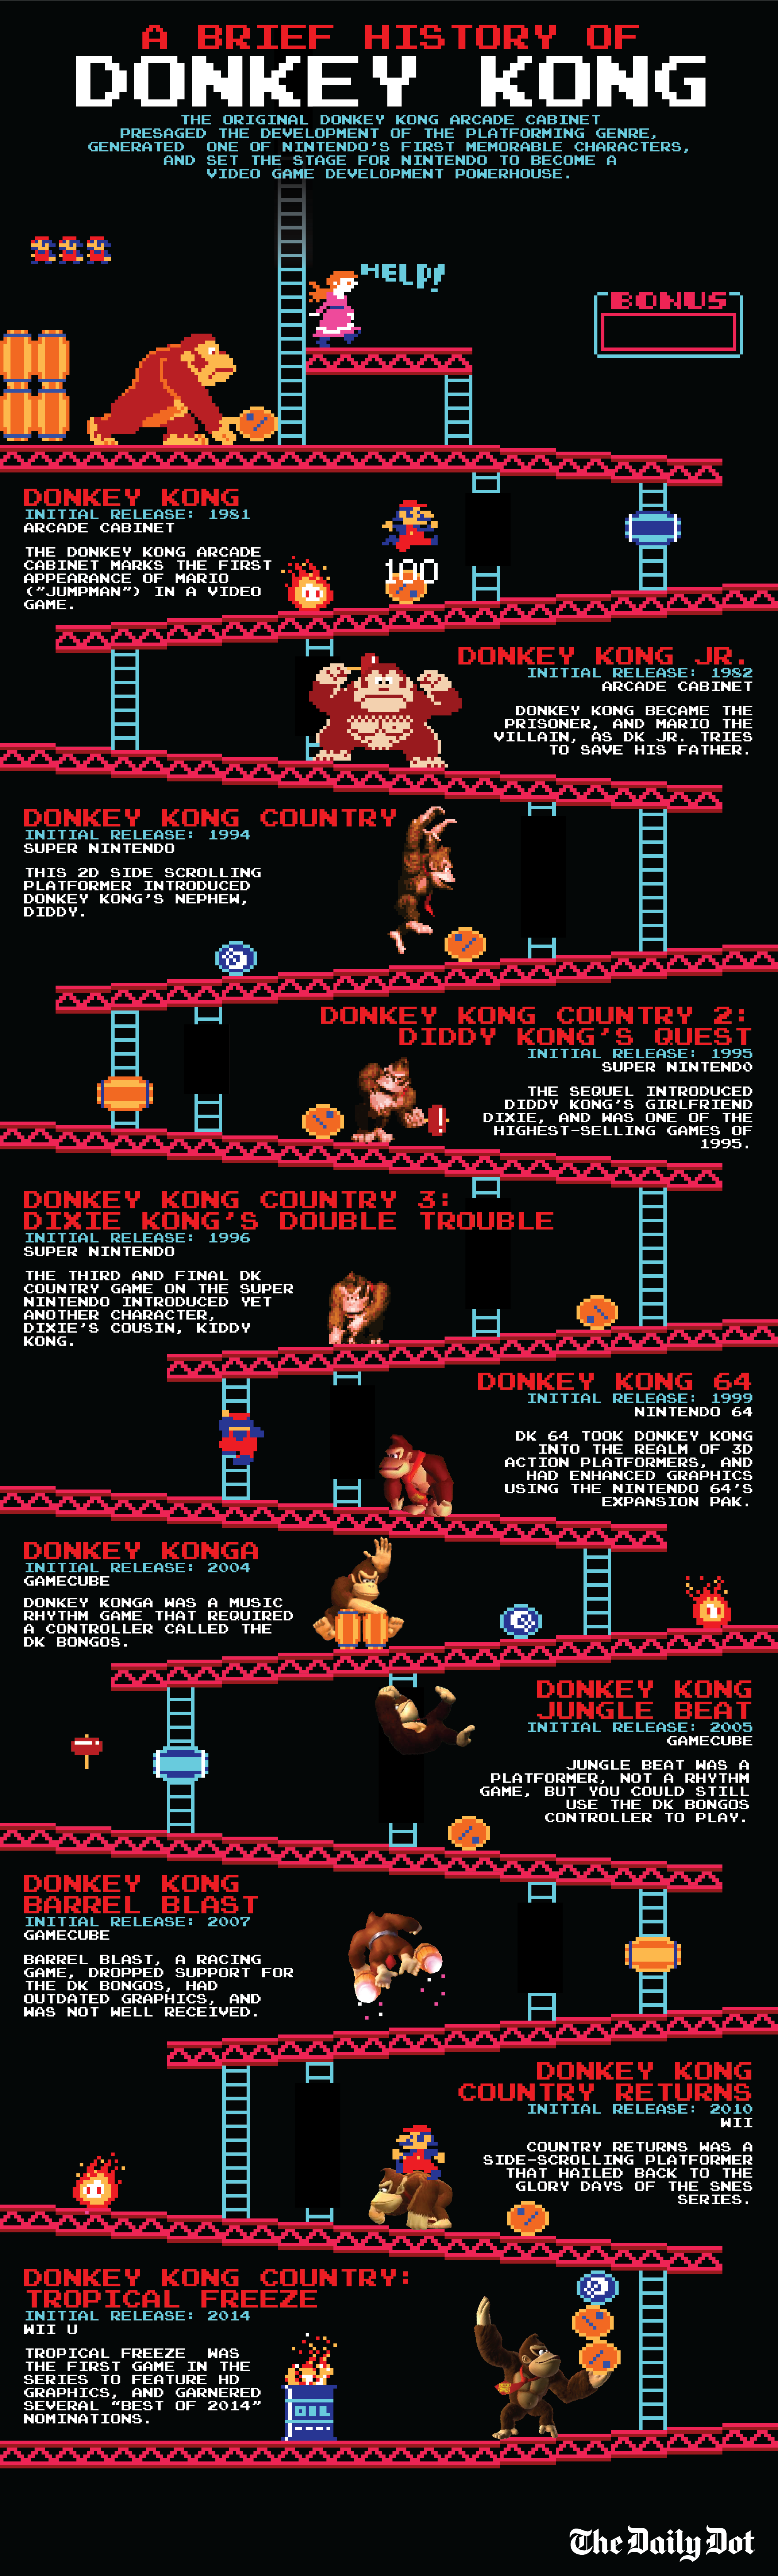 dk_infographic-01